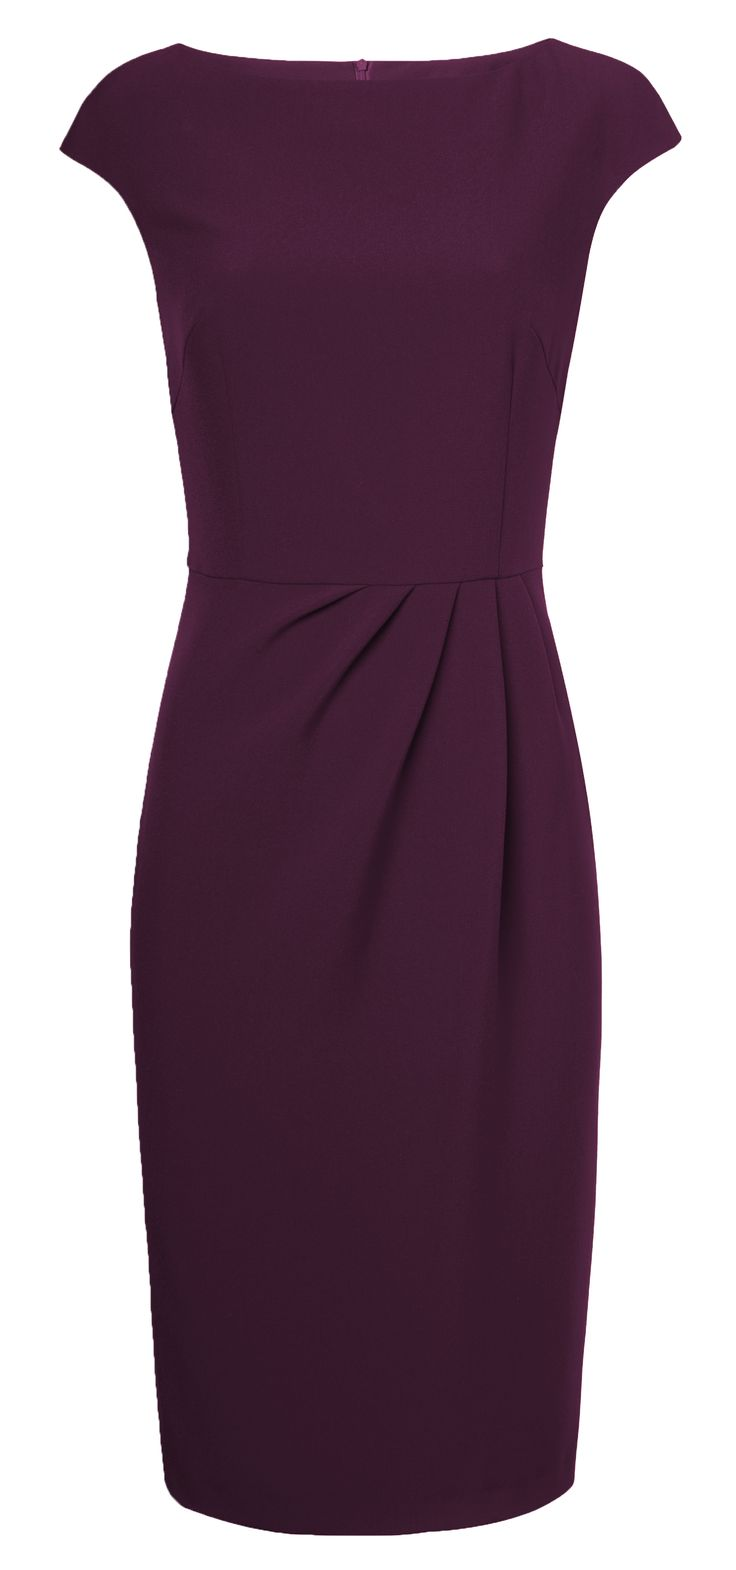 Classy pencil skirt work dress for hourglass body shape AURORA DRESS HOURGLASS available at www.inna-store.com